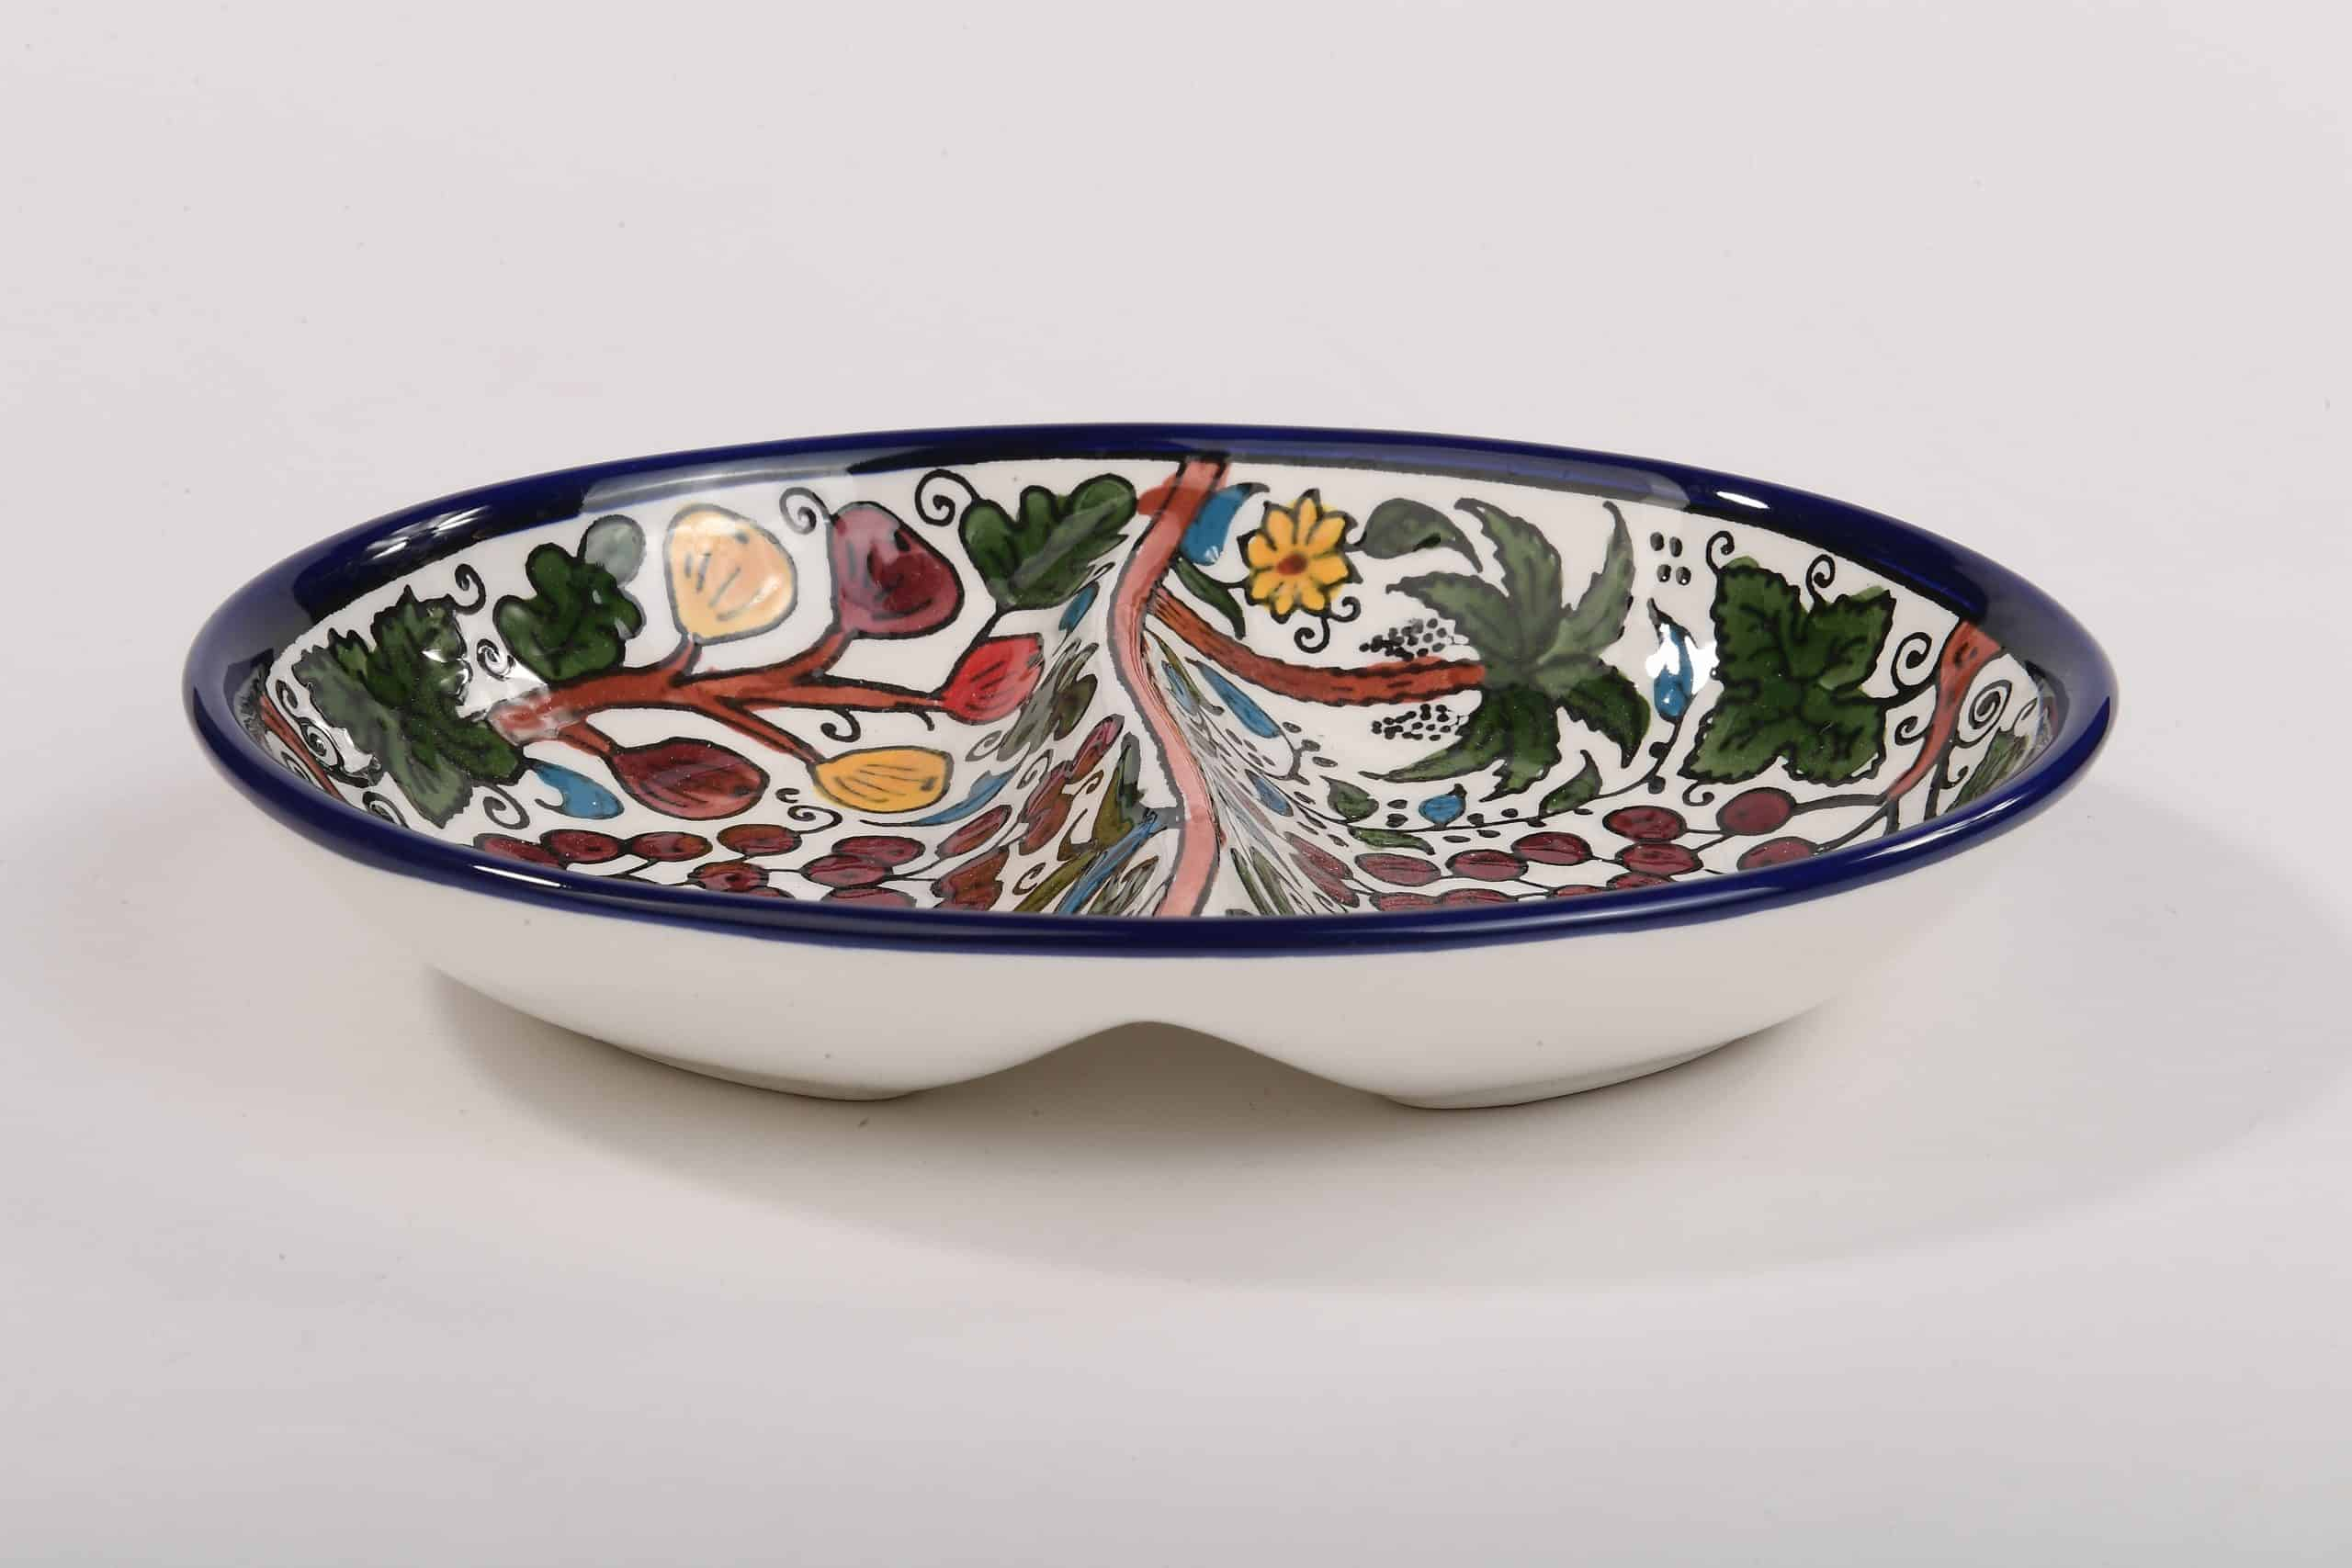 Armenian Pomegranate Ceramic Bowl with Seven Species Design. Armenian Ceramic Hand painted